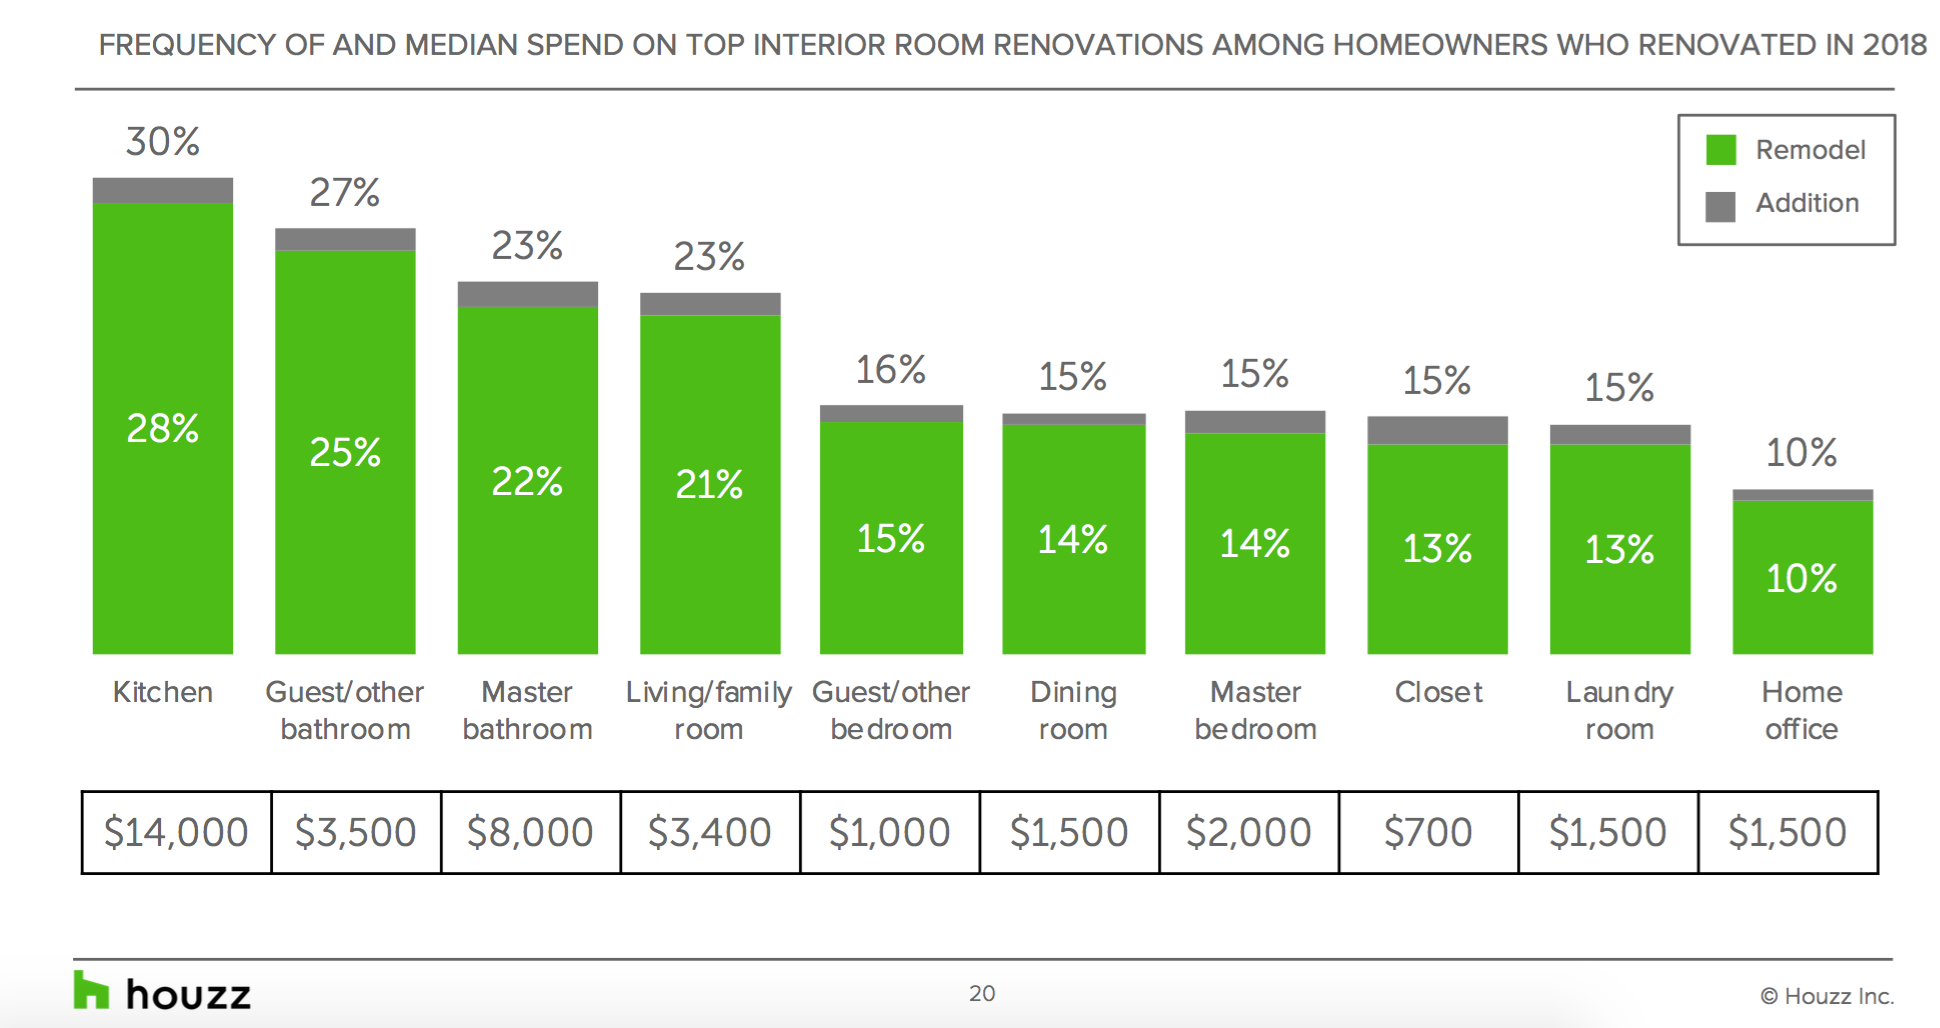 remodeling costs by room. Visit source link at the end of this article for more information.